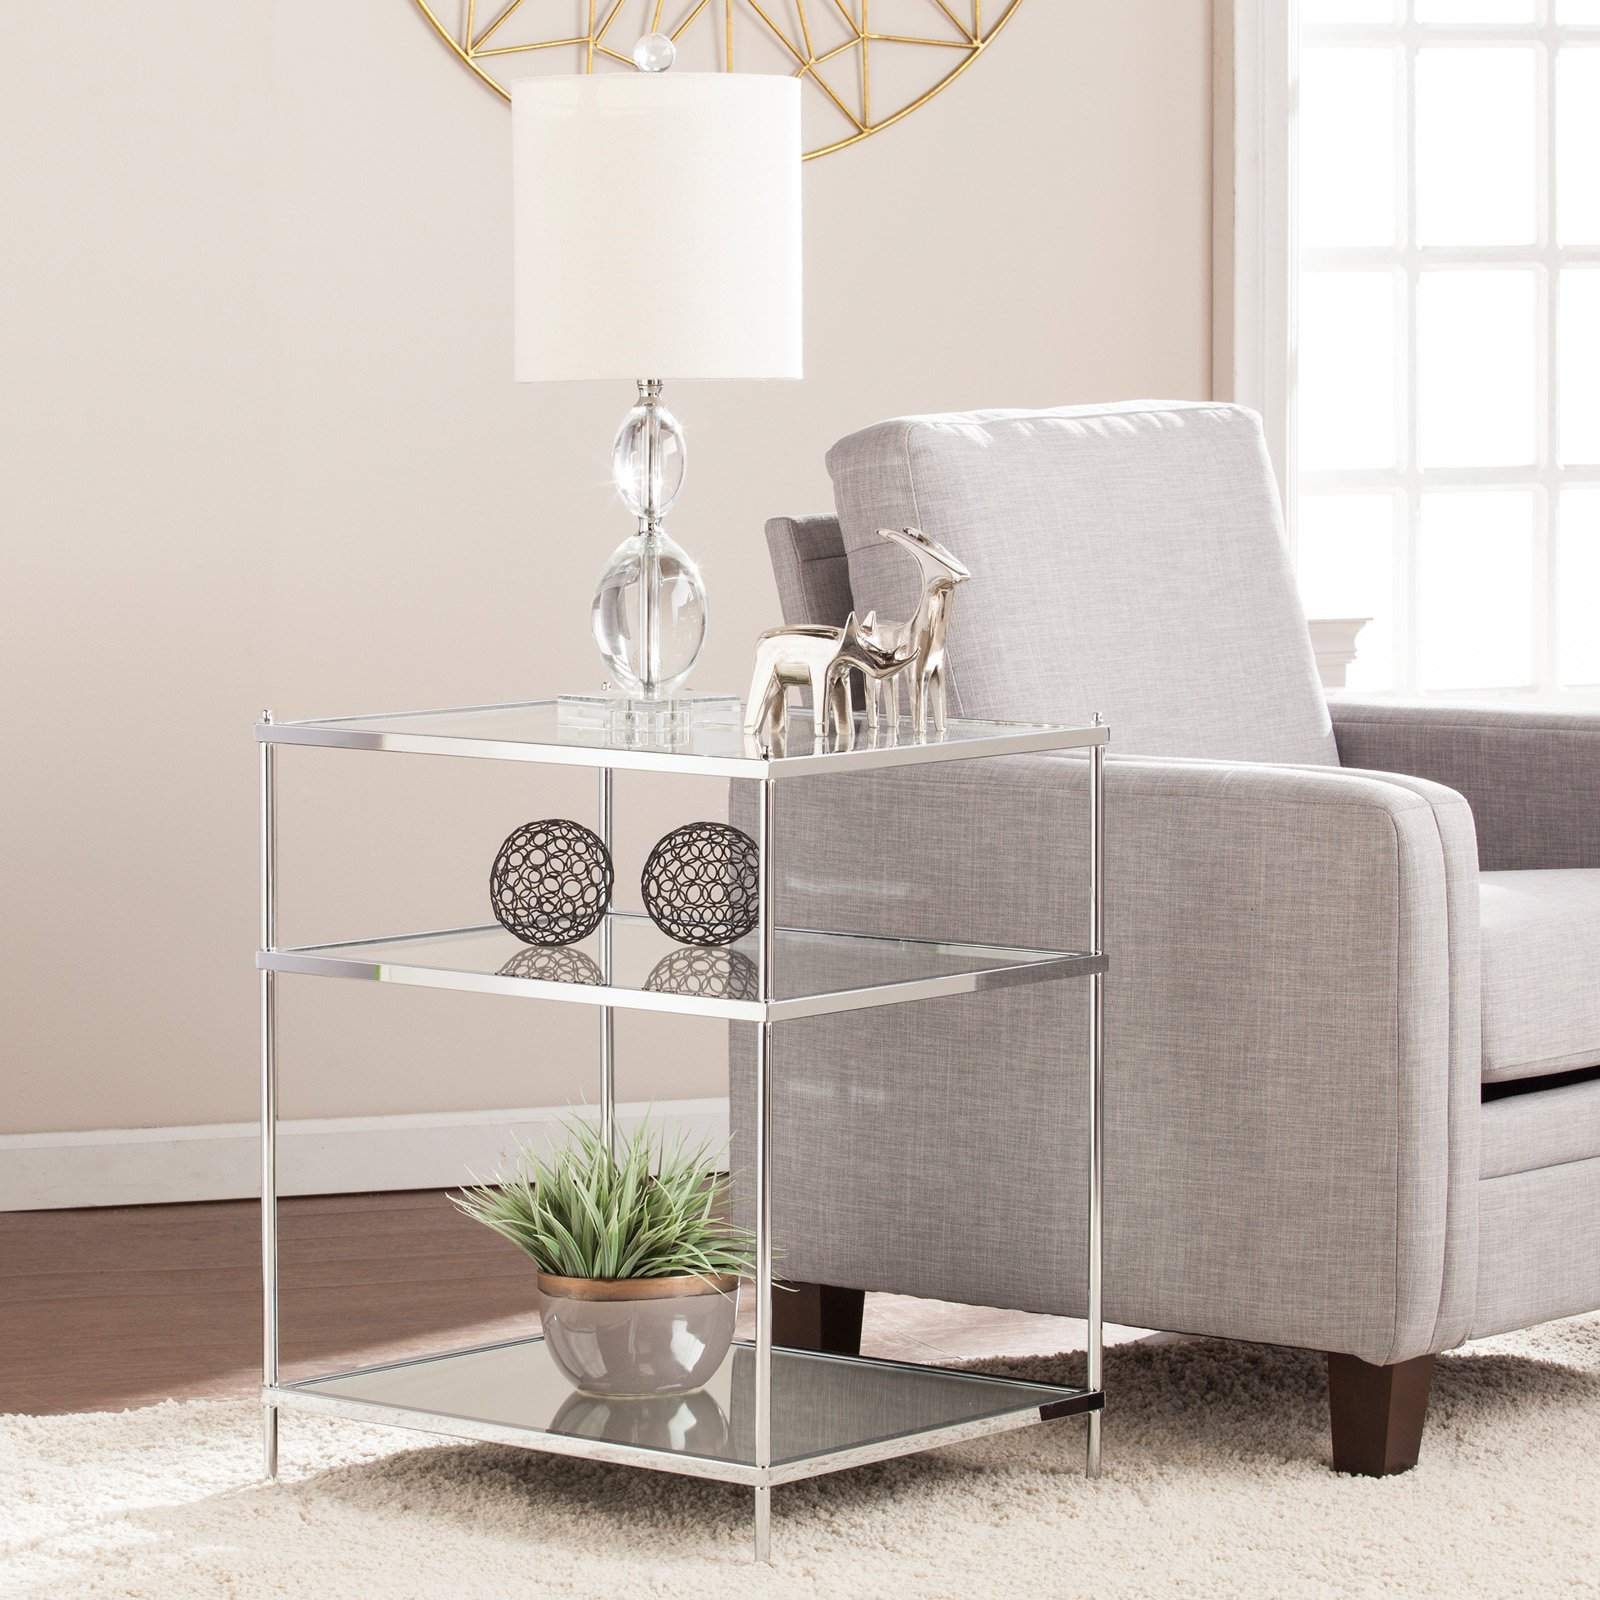 Southern Enterprises Knox Glam Mirrored Side Table - Chrome